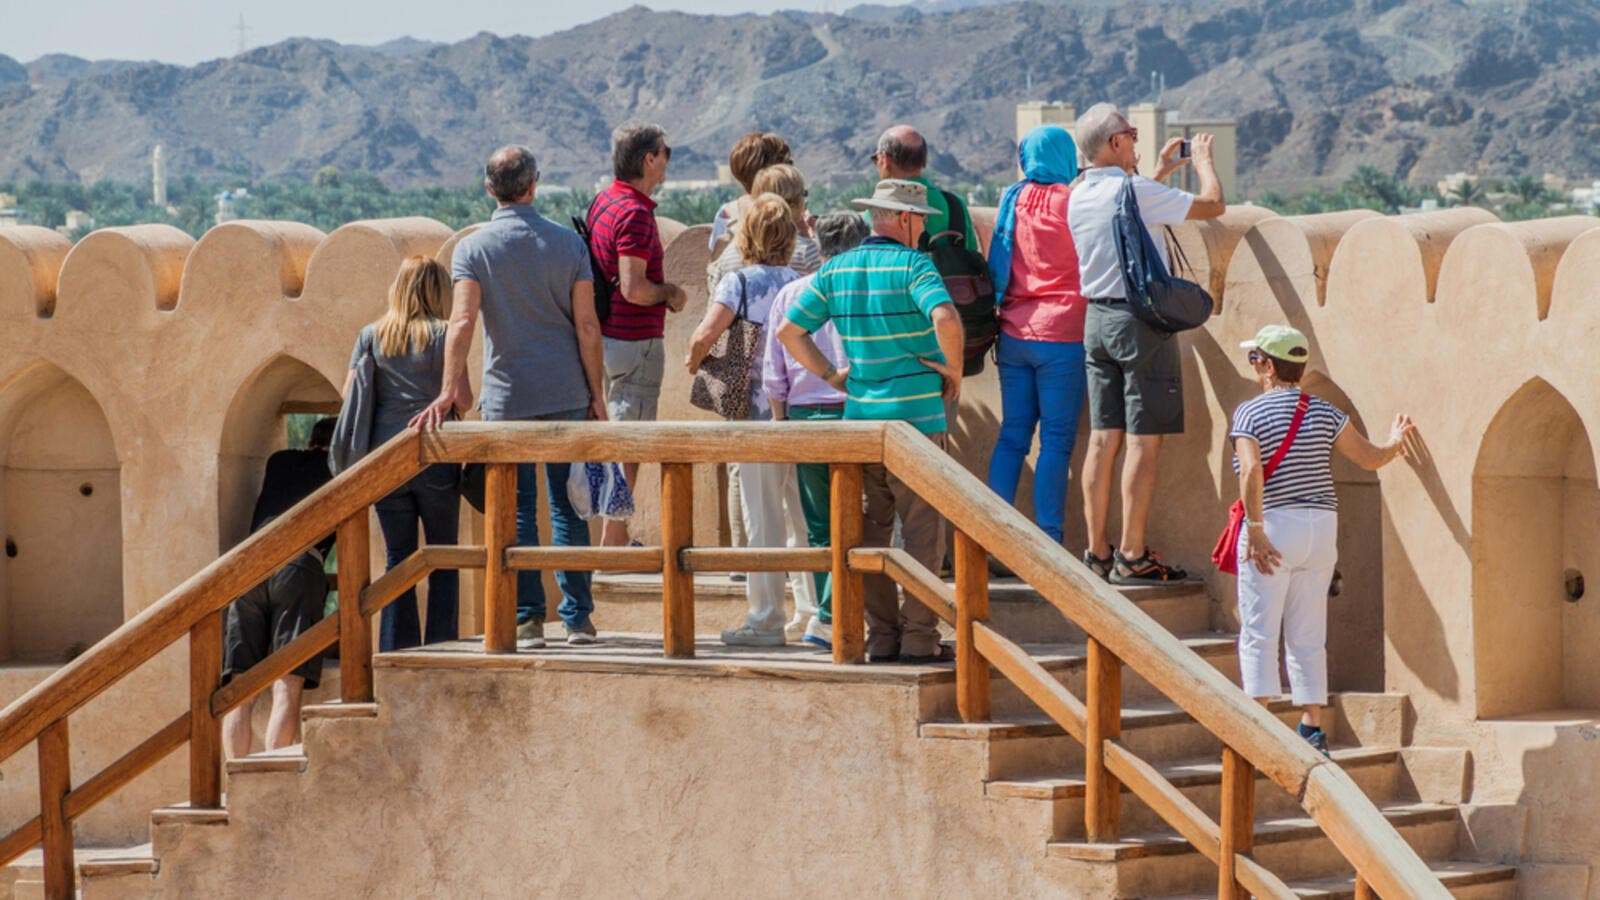 There were 330,685 foreign visitors to Oman in April 2019 – 84,452 more than the same month in the previous year, accounting for a 34.3 percent increase.